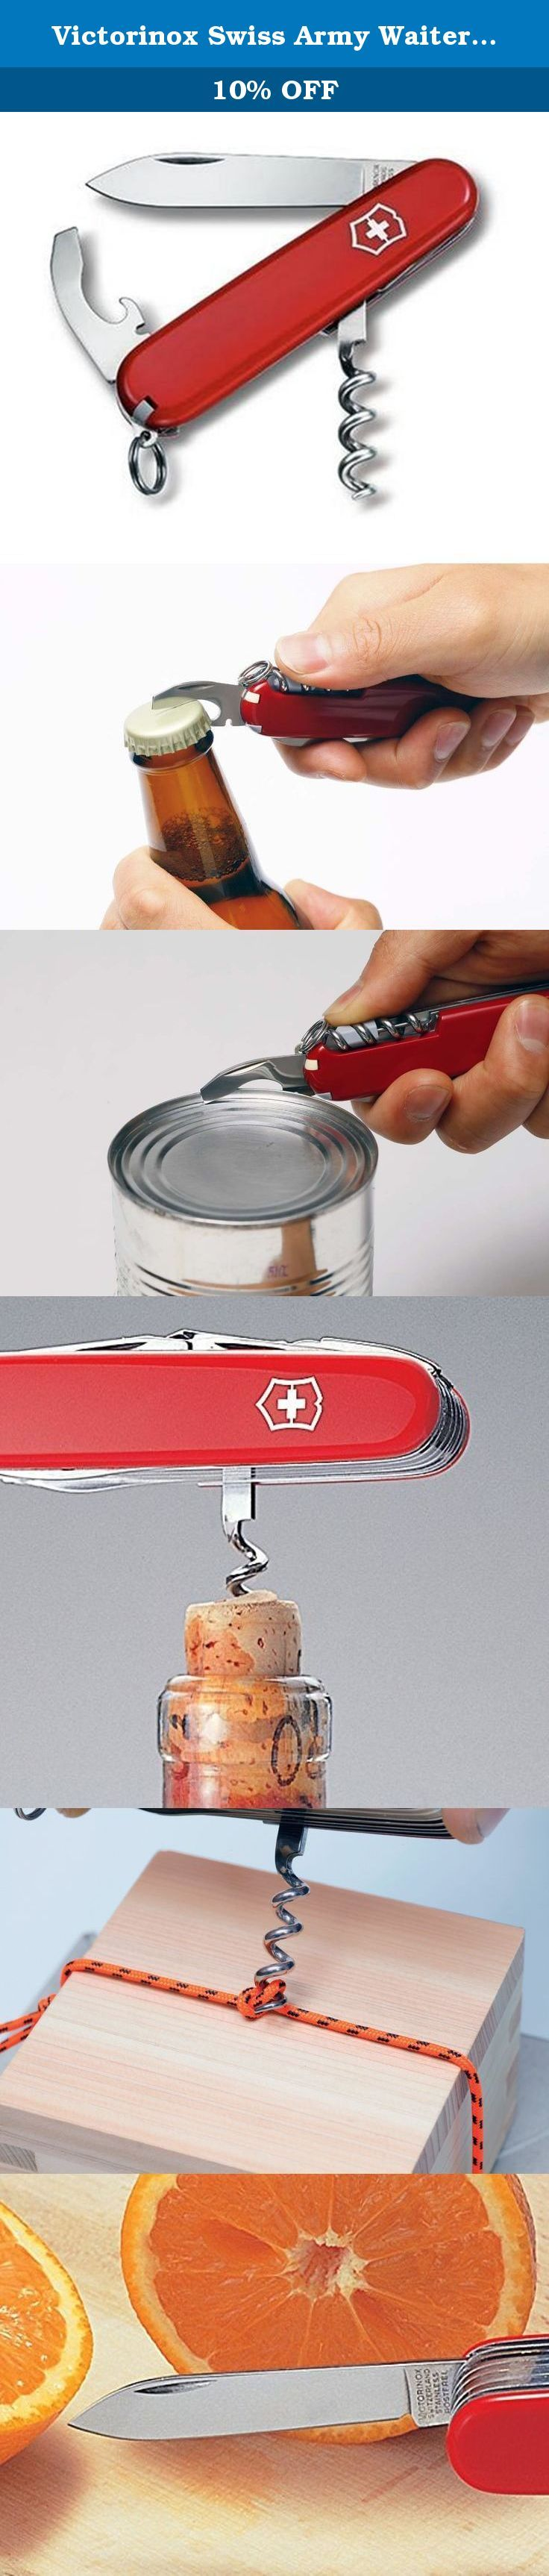 Victorinox Swiss Army Waiter Pocket Knife. The Victorinox Swiss Army Waiter Knife is designed for waiters, picknicking and wine connoisseurs. Features all the tools needed opening wine and pop-off top bottles or cans.